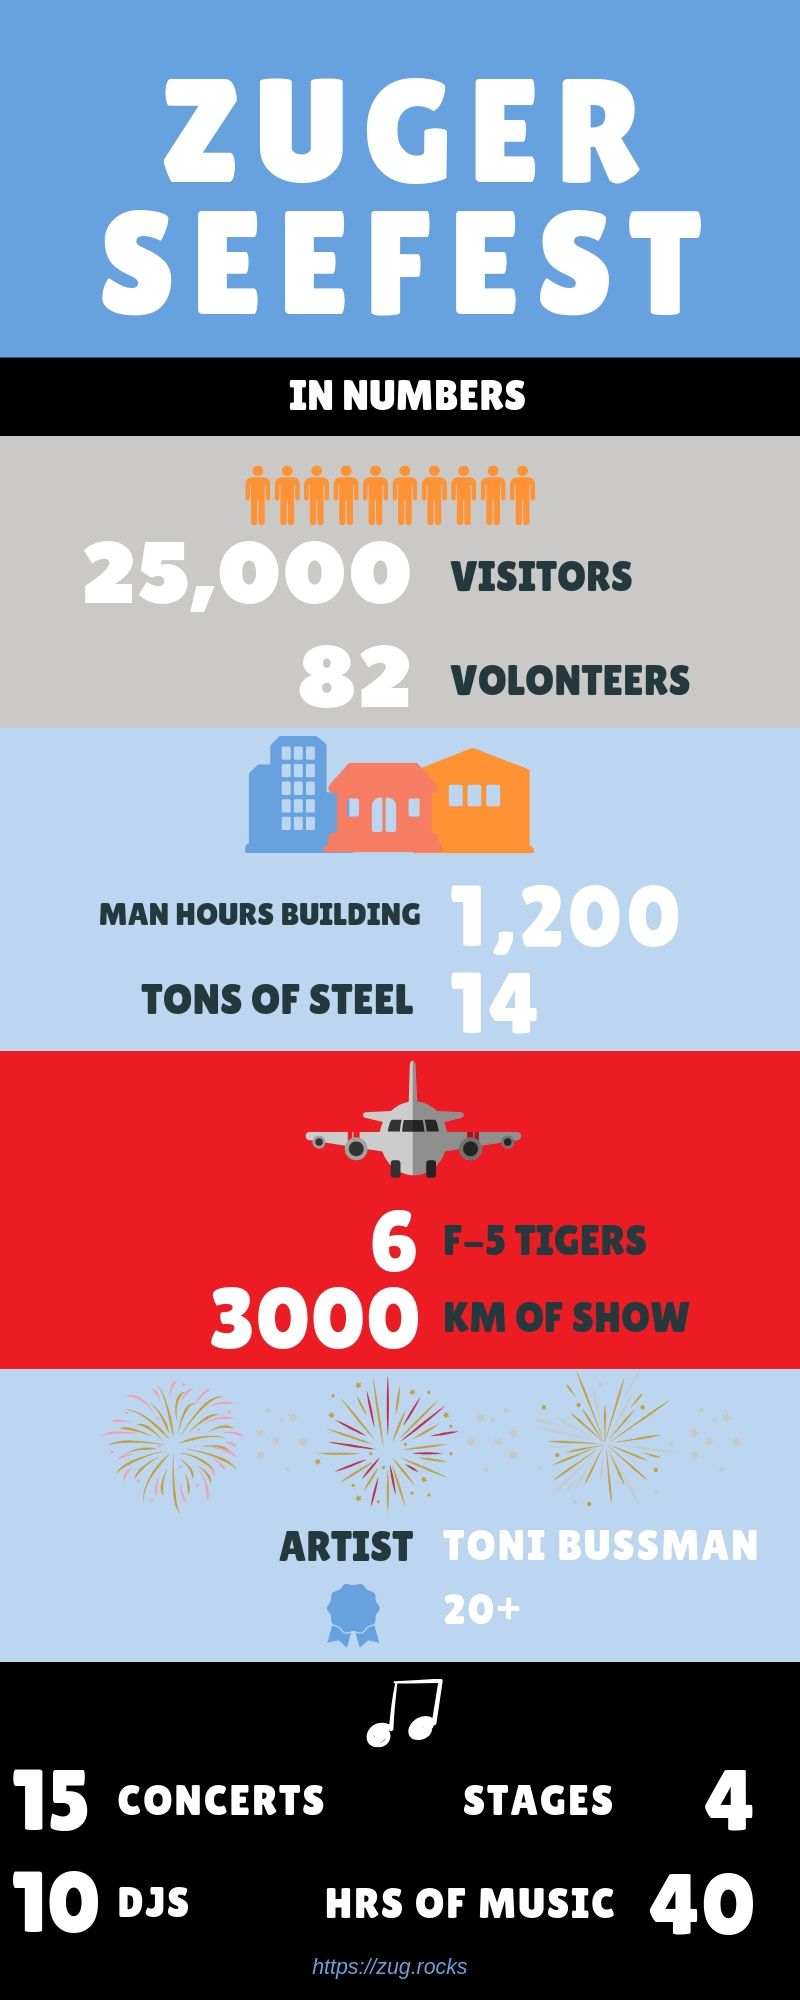 Zuger Seffest in numbers